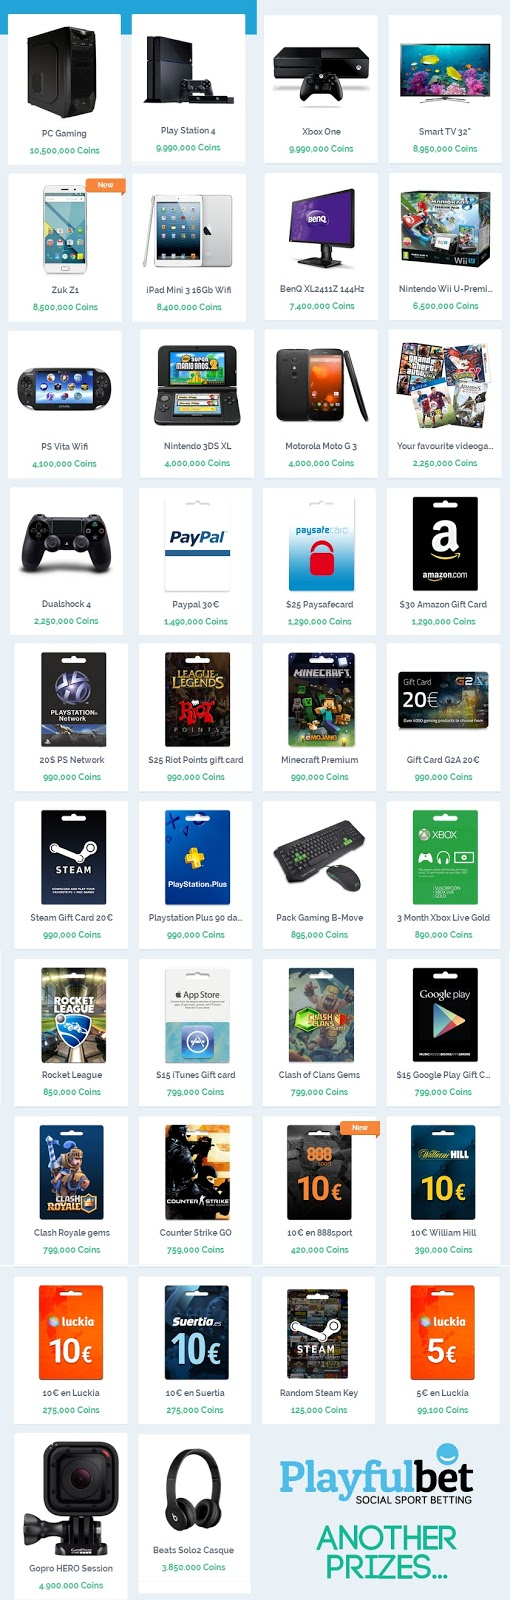 Playfulbet prizes images